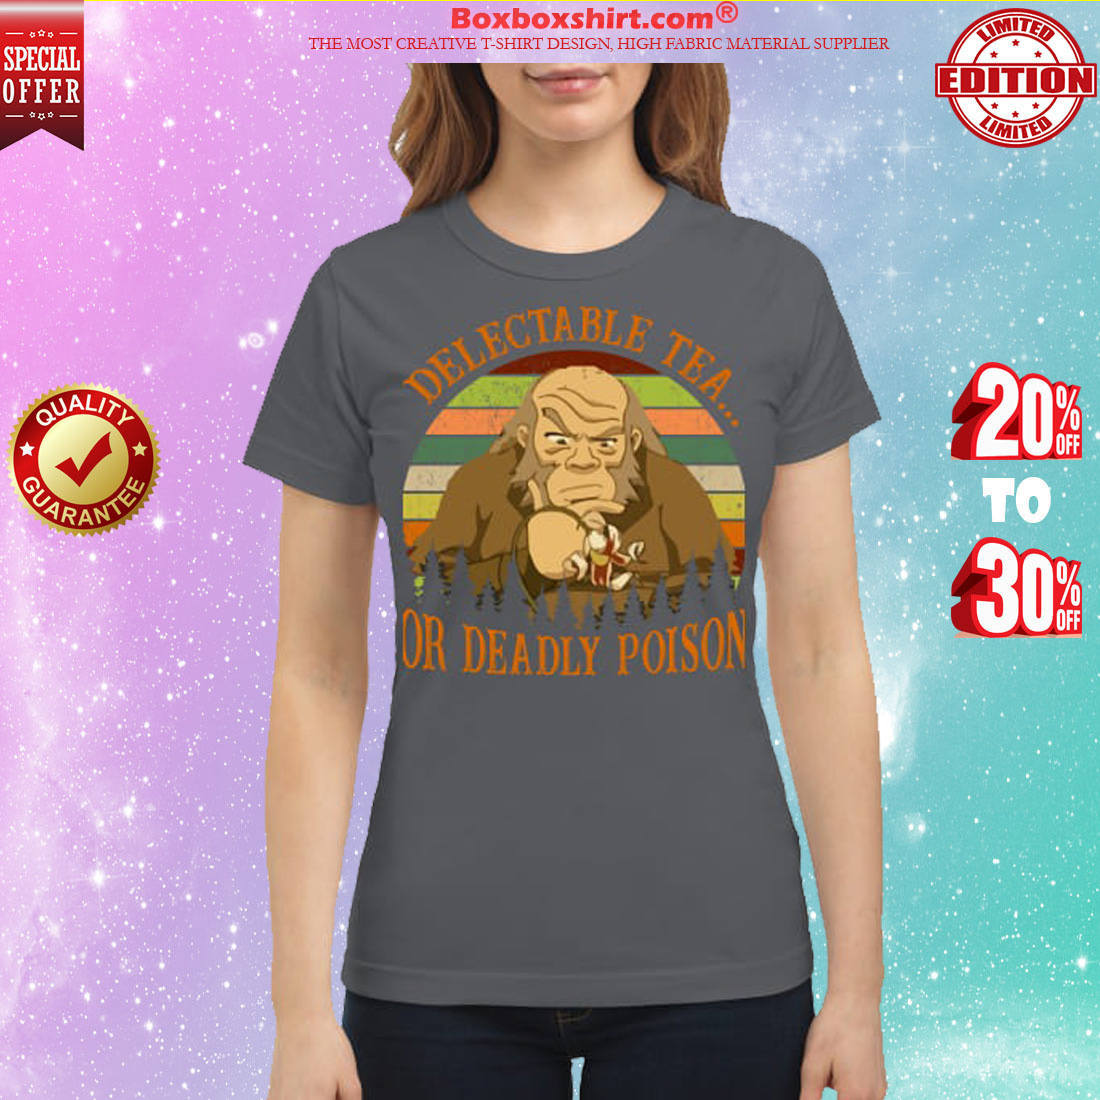 Iroh delectable tea or deadly poison classic shirt